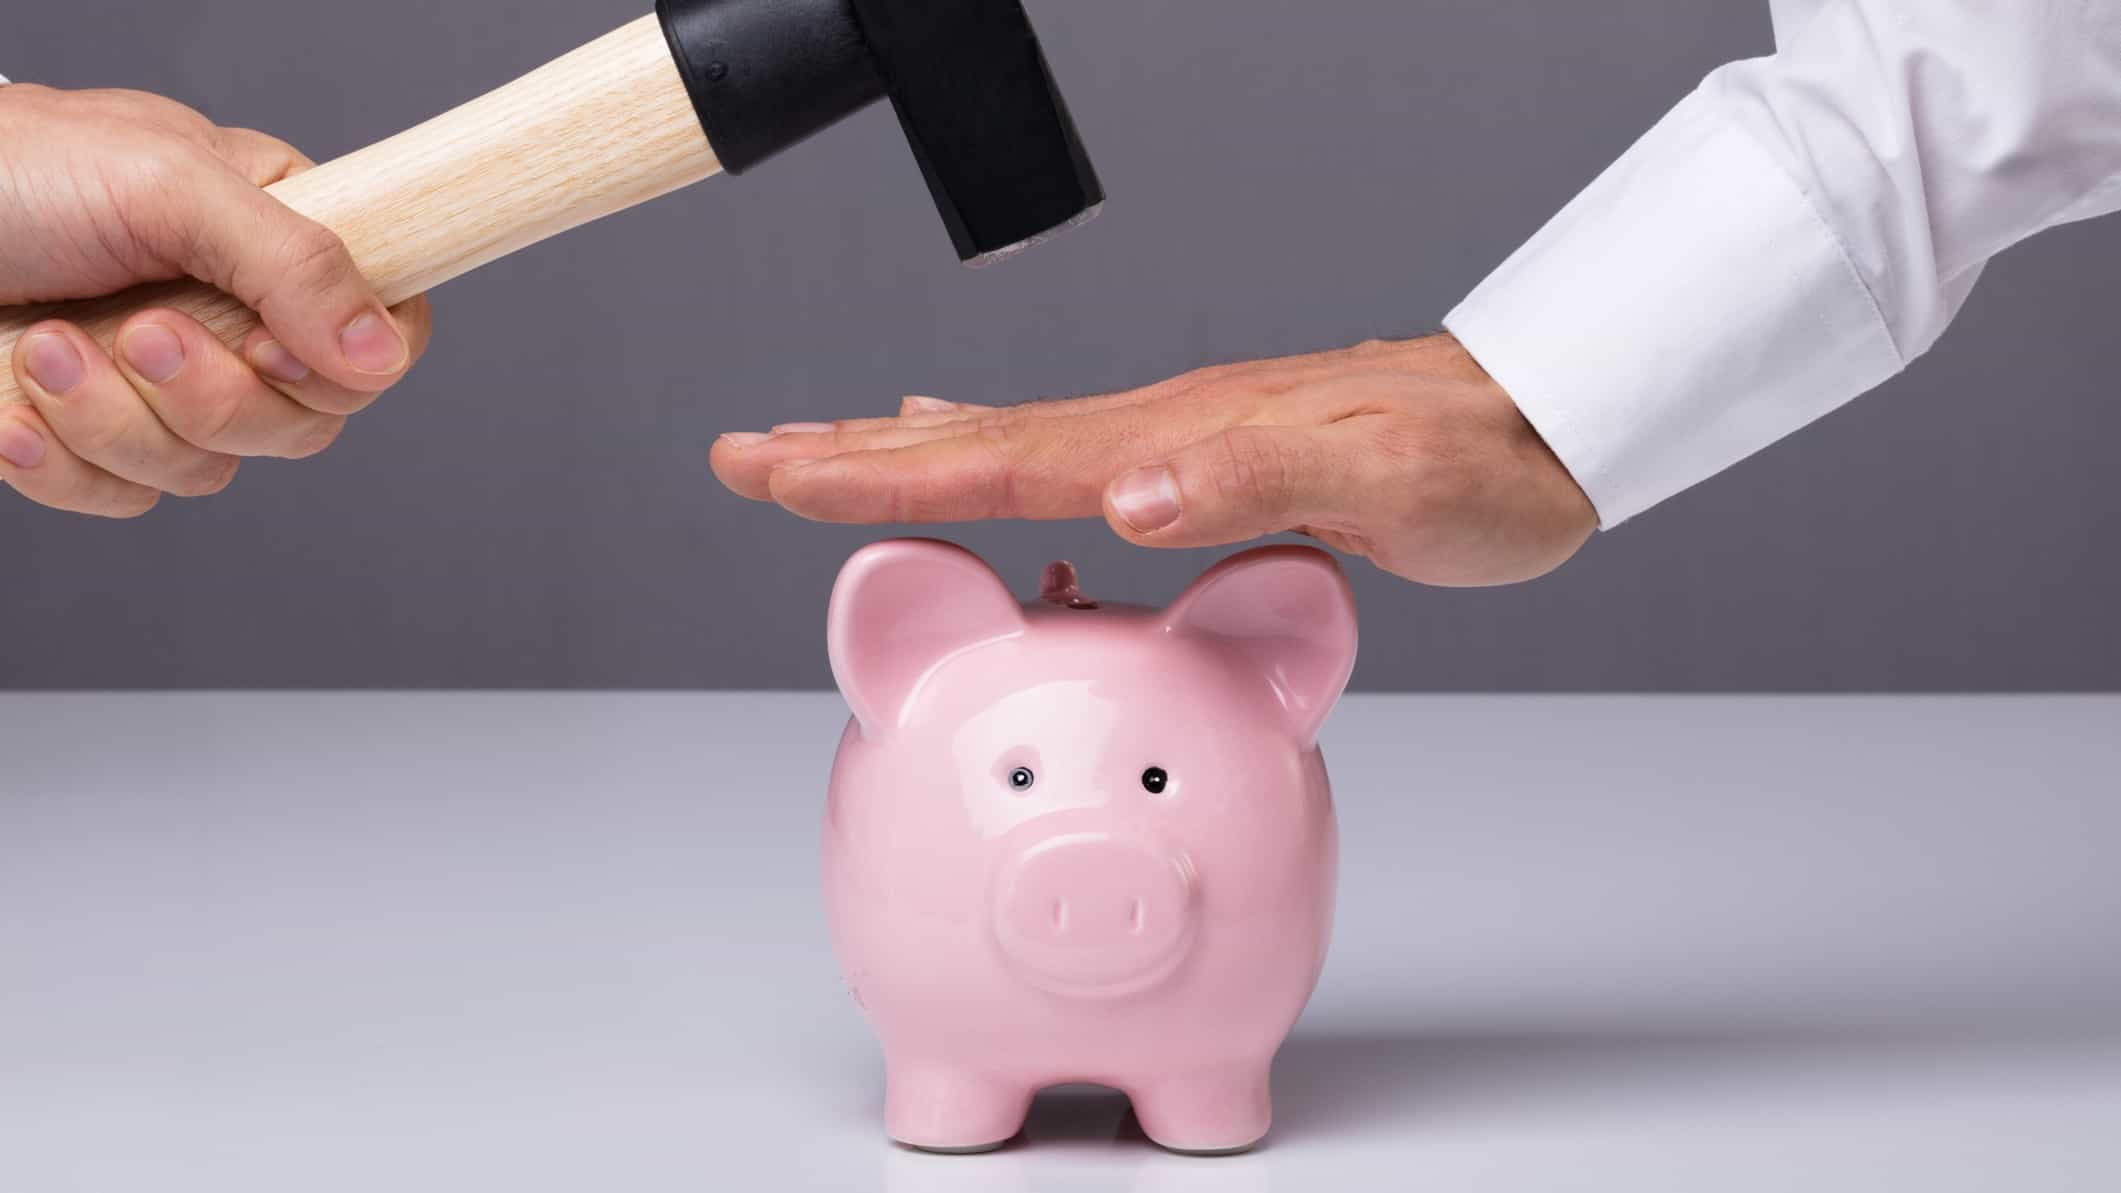 A hand protecting a pink piggy bank from being smashed by a hammer, representing the prevention of bank or government raids on super